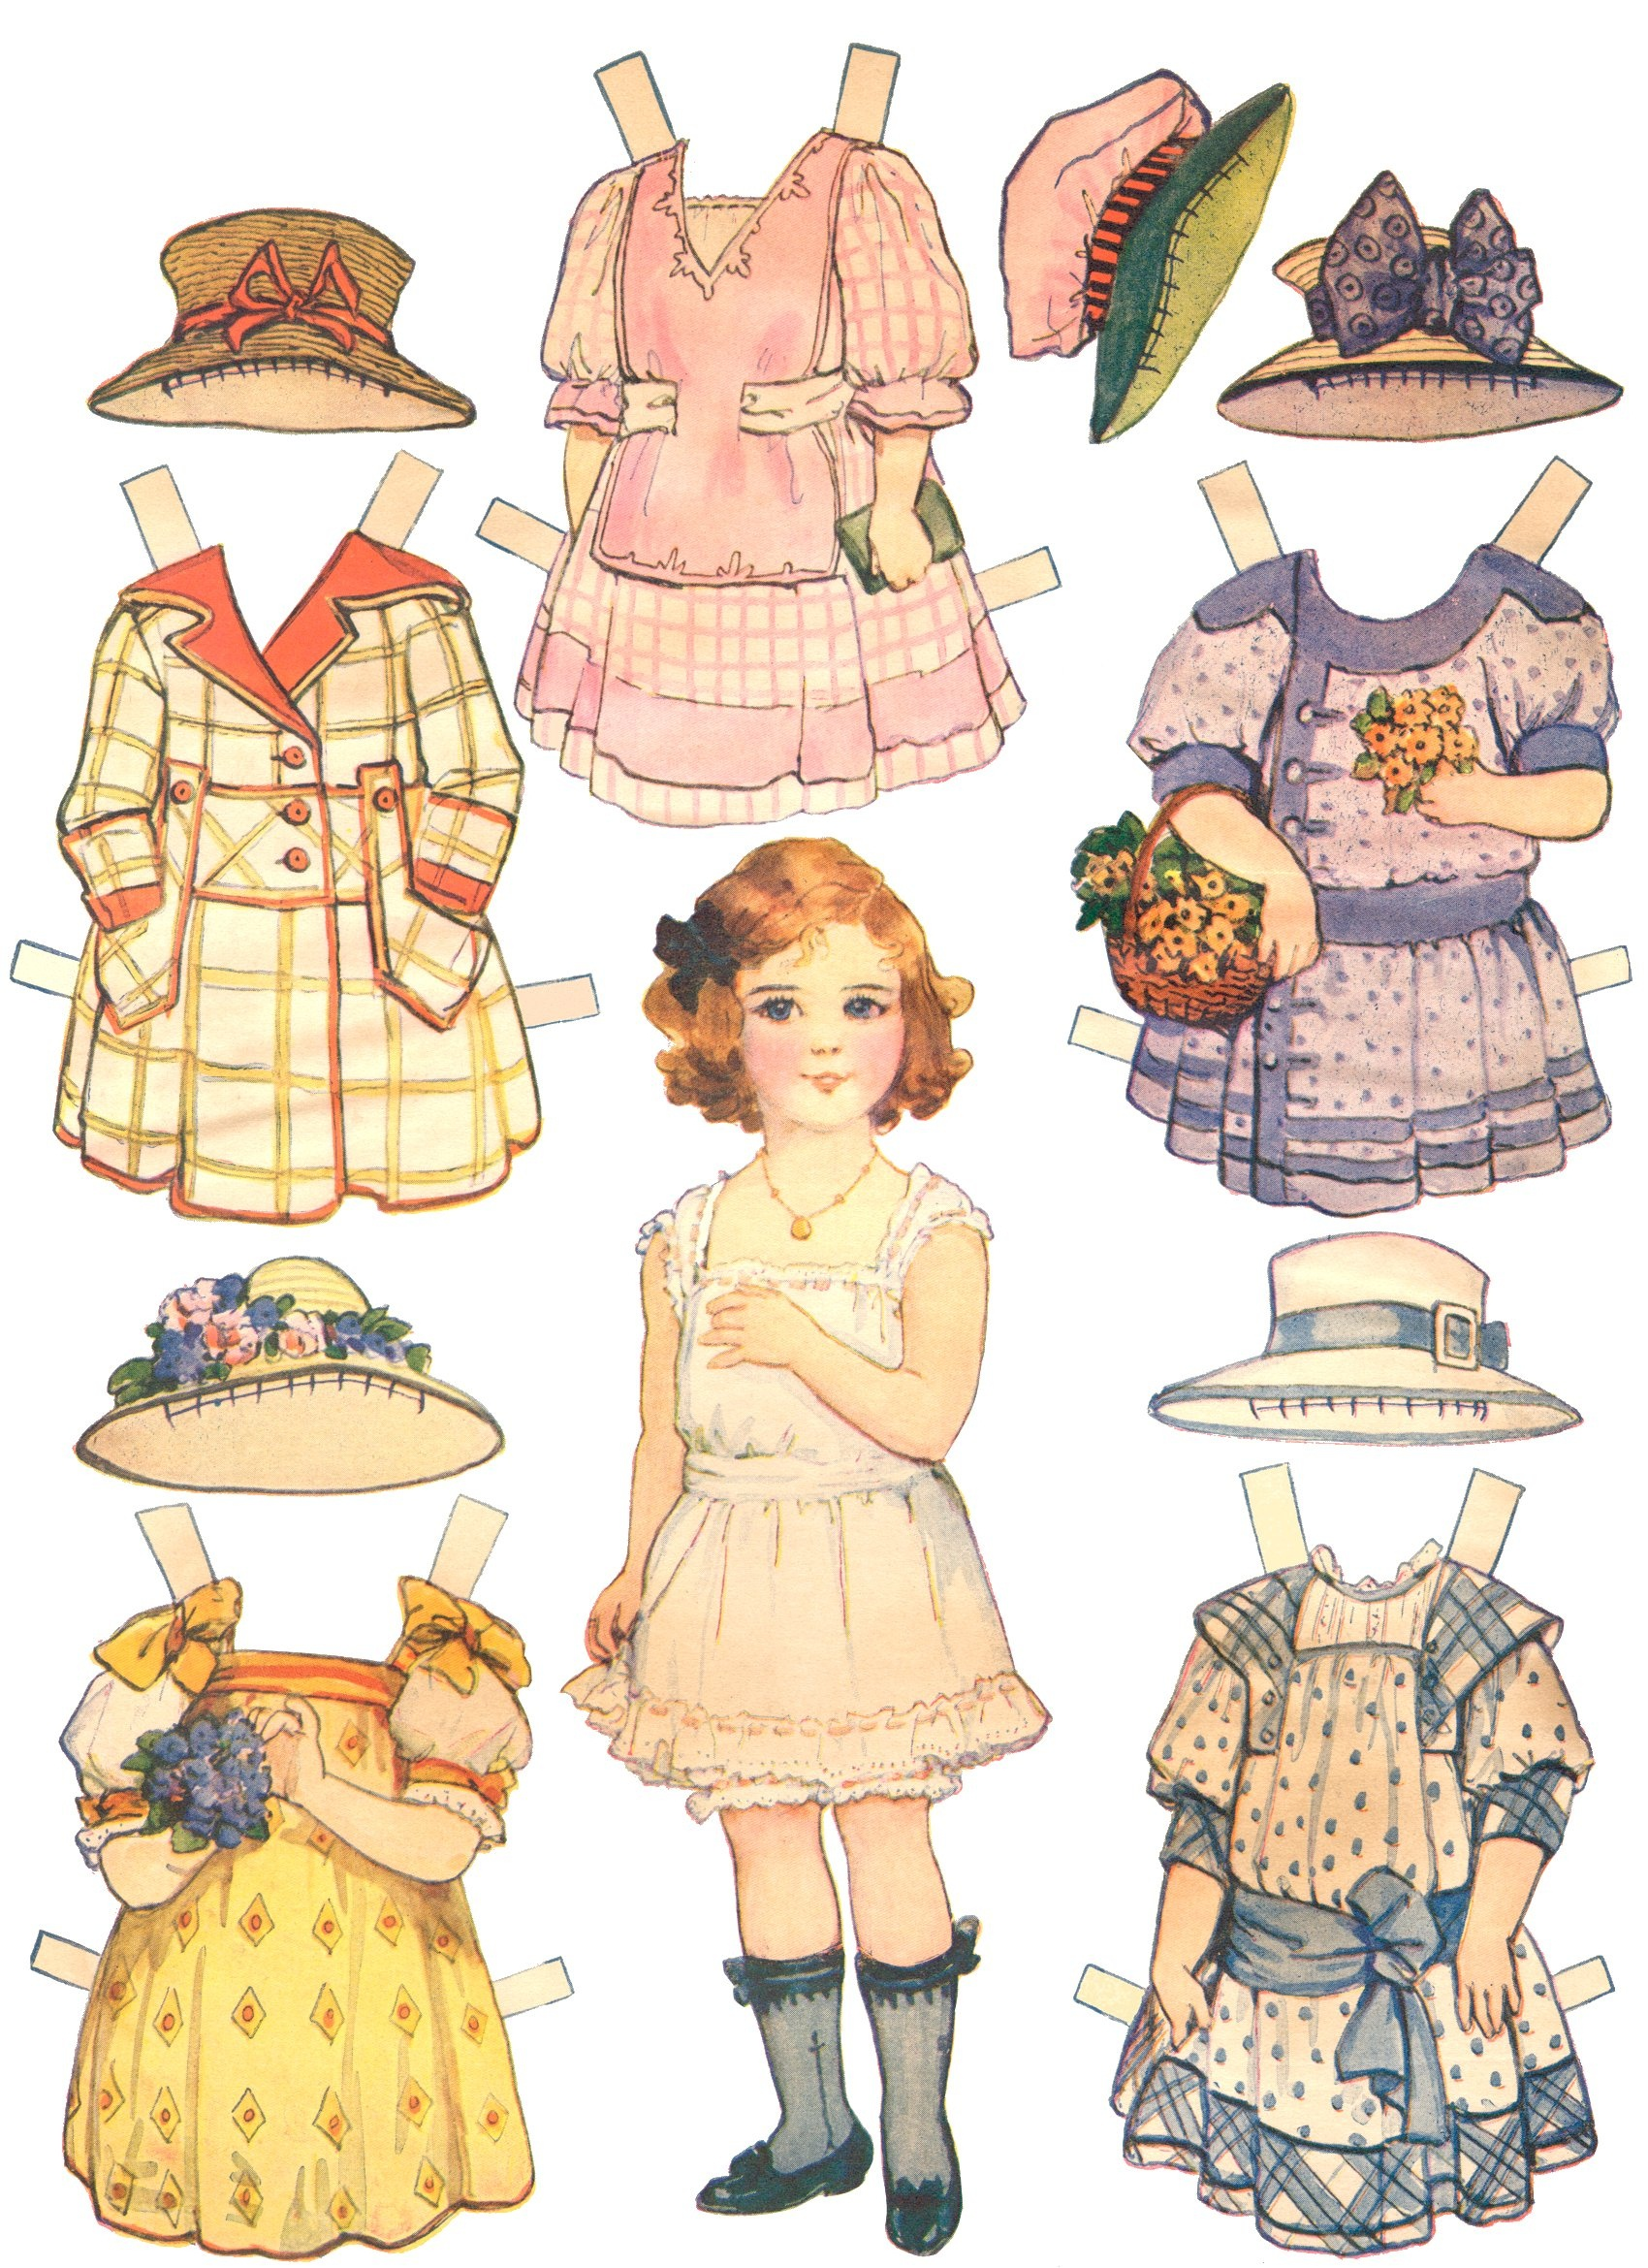 Paper Dolls And Paper Doll Dresses - Printable From Kid Fun - - Free Printable Paper Dolls